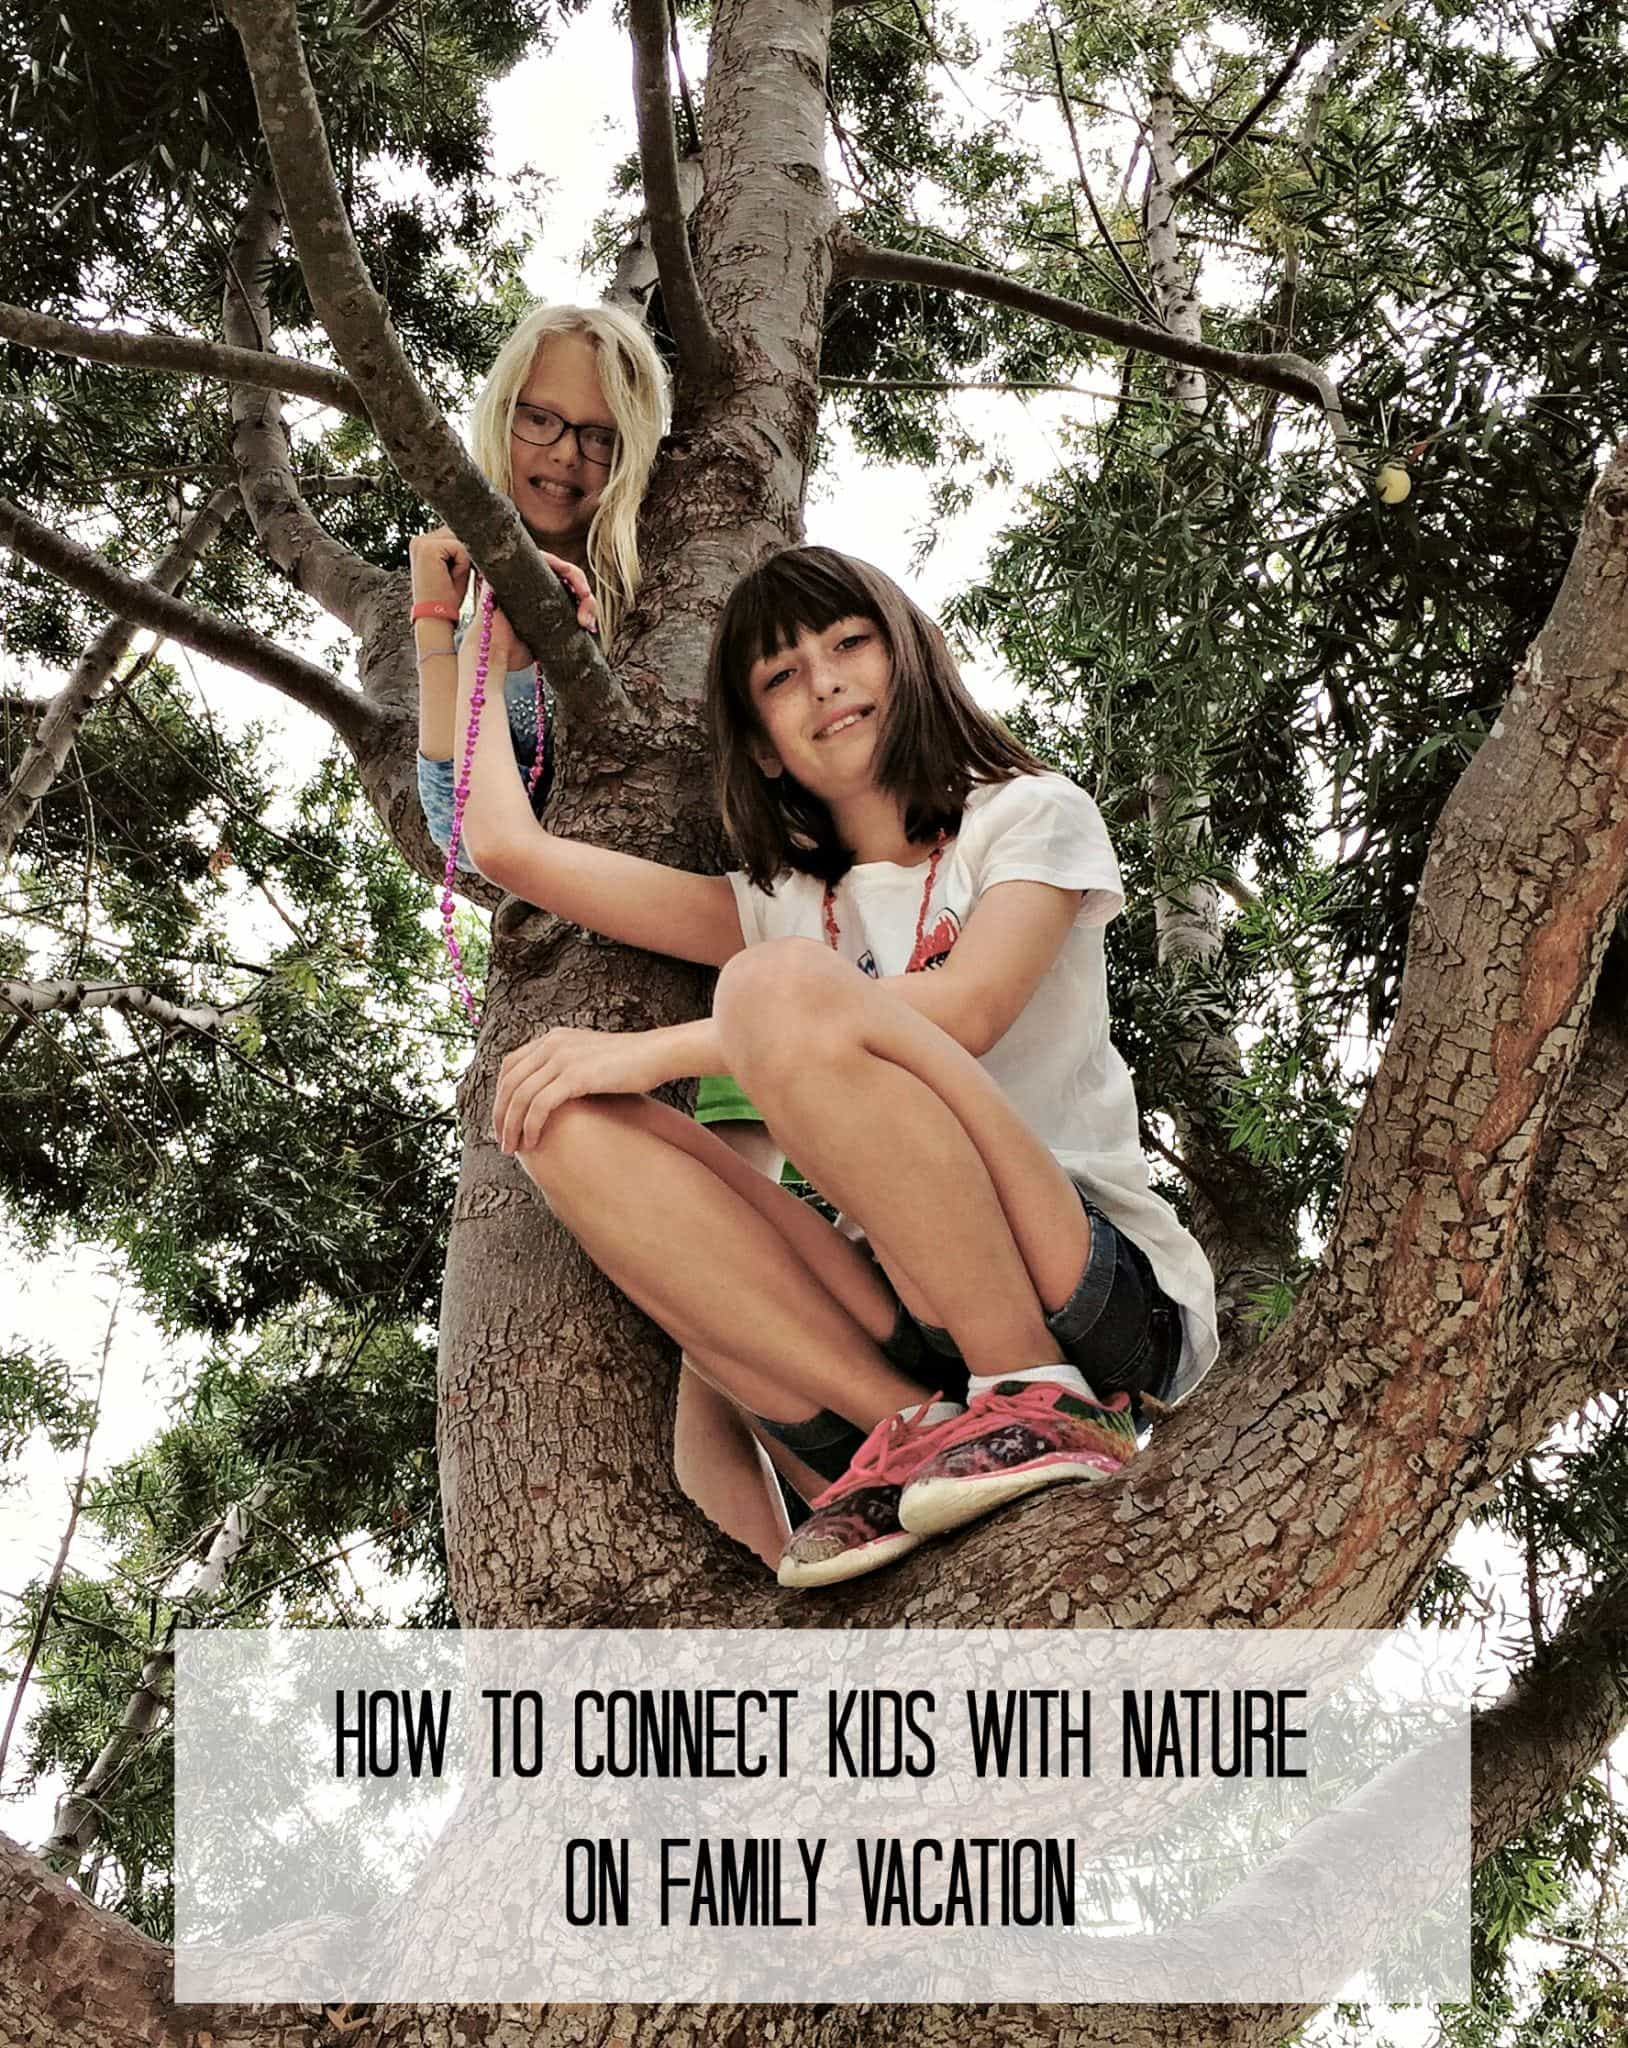 How to Connect Kids with Nature on Family Vacation